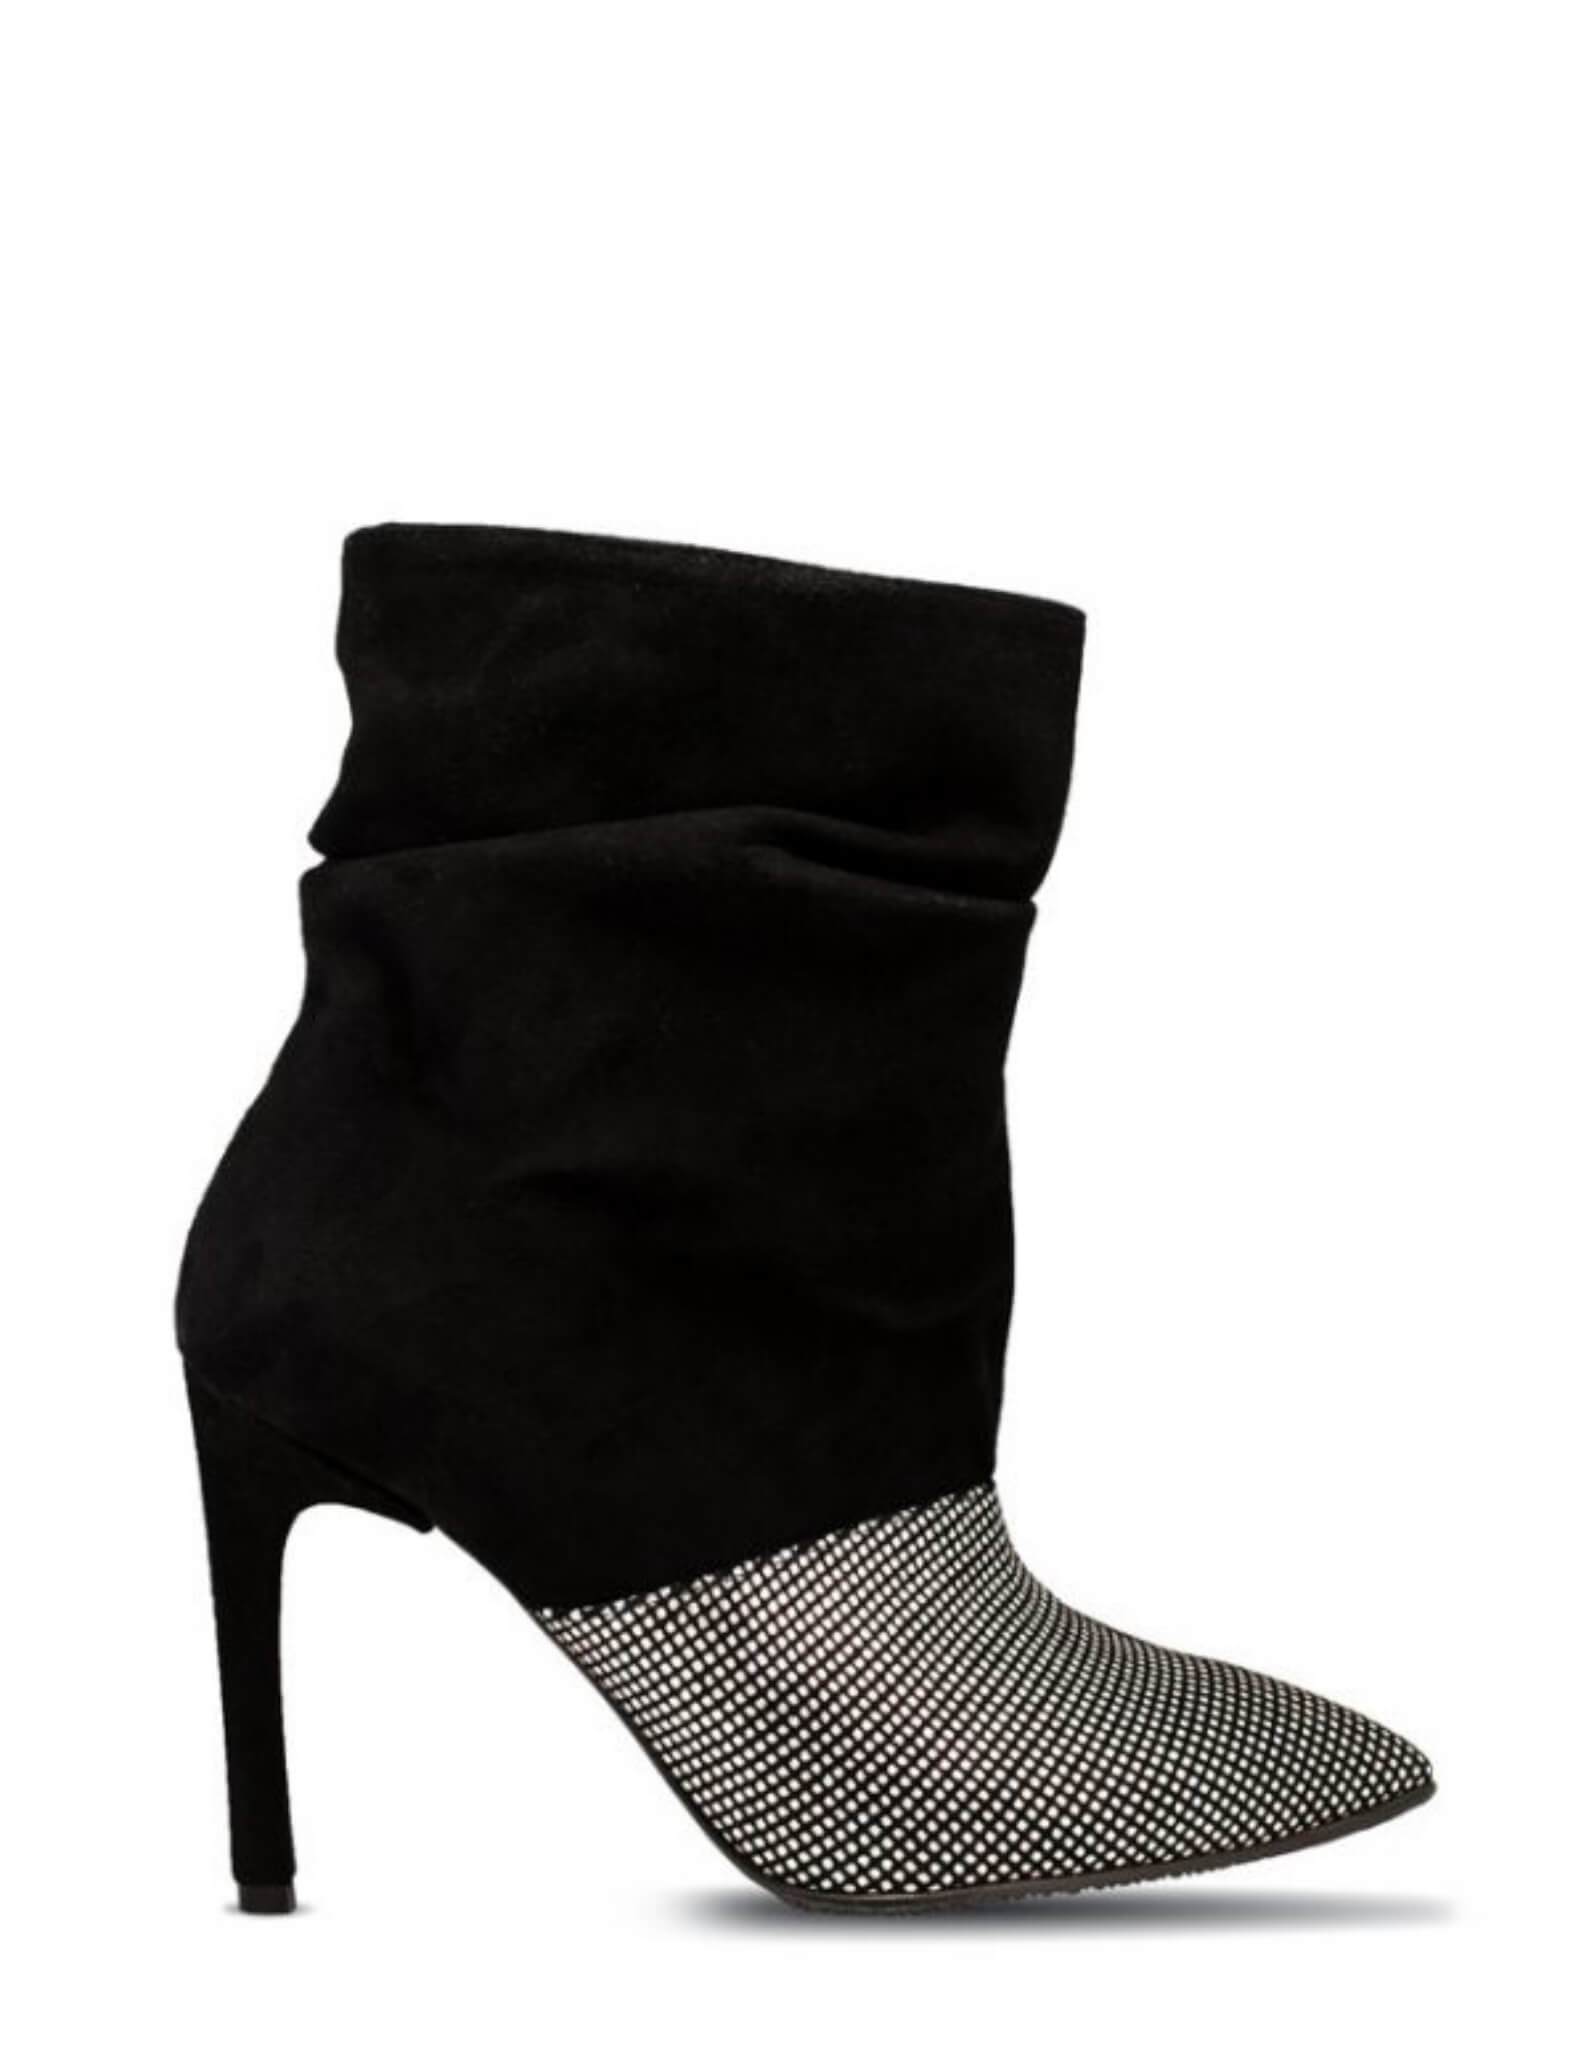 ROCK YOUR STYLE Ankle Boots